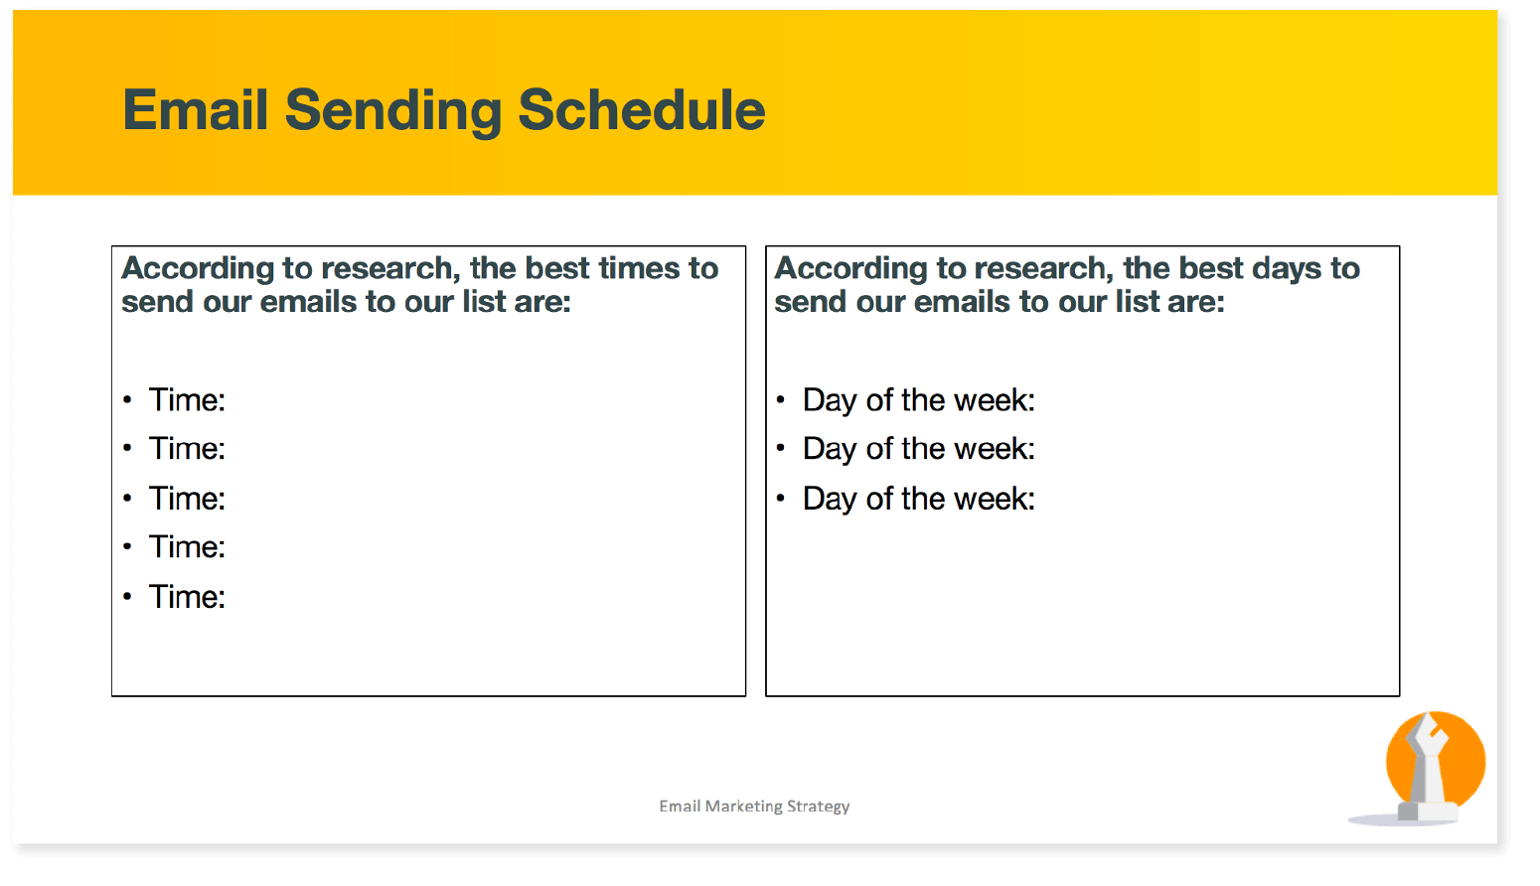 Adding a schedule to the strategy template